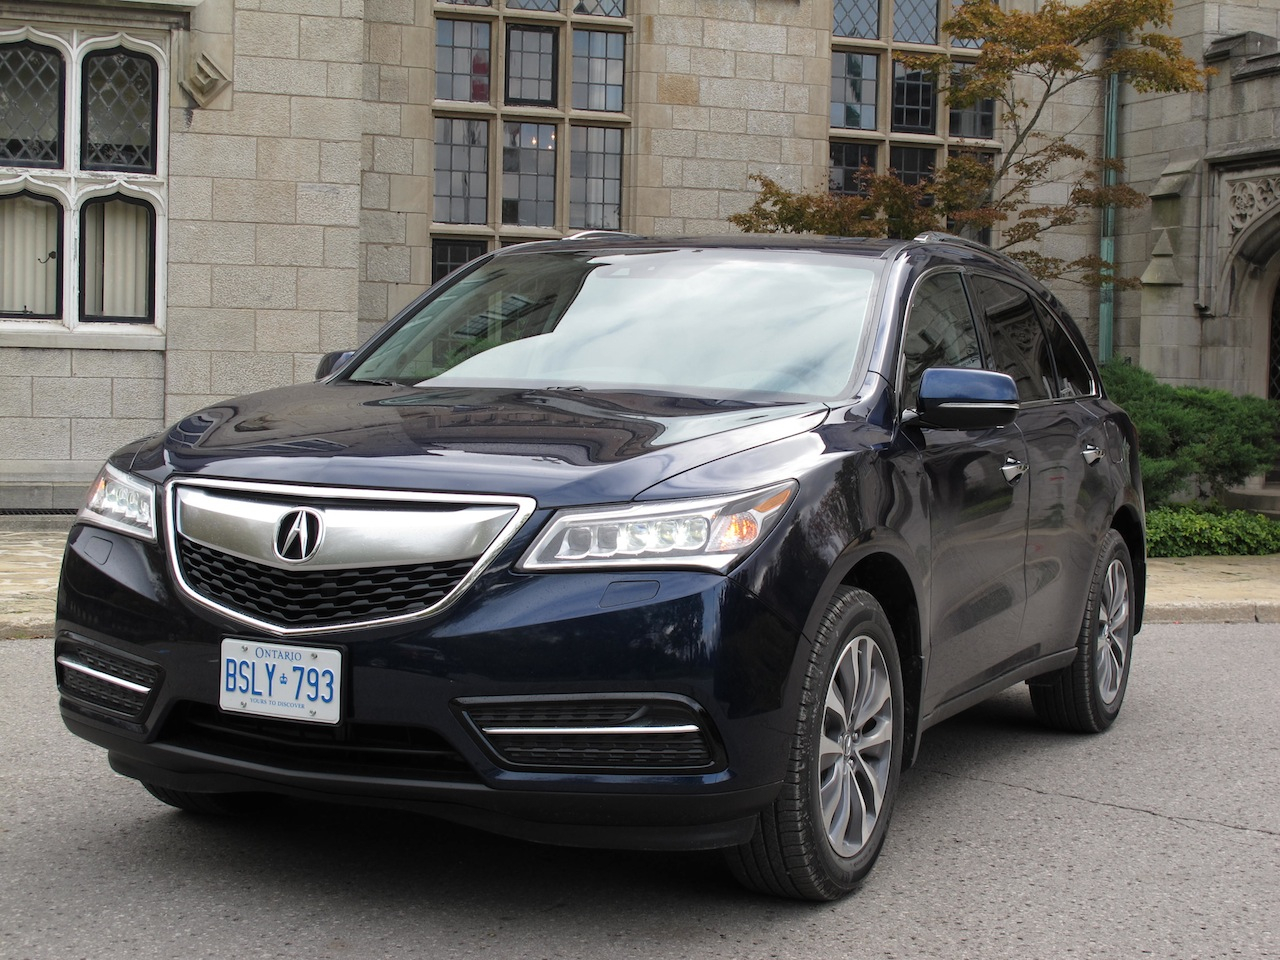 2015 acura mdx in action release date price and specs. Black Bedroom Furniture Sets. Home Design Ideas